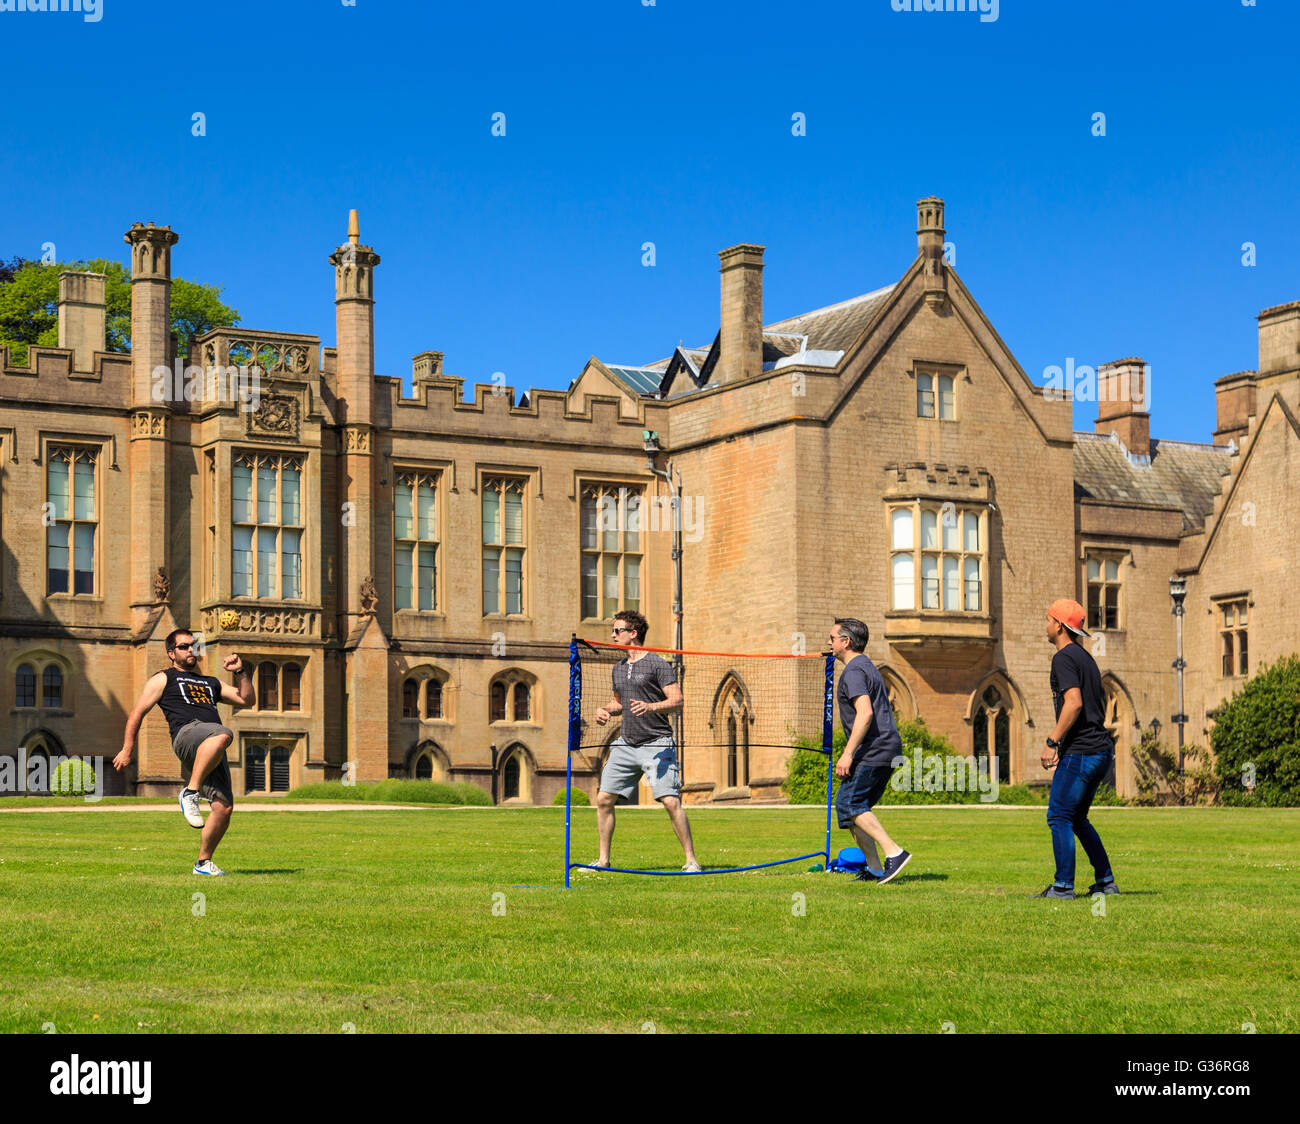 A group of young men playing Sepak Takraw (kick volleyball) on the lawn. At Newstead Abbey, Nottinghamsh - Stock Image